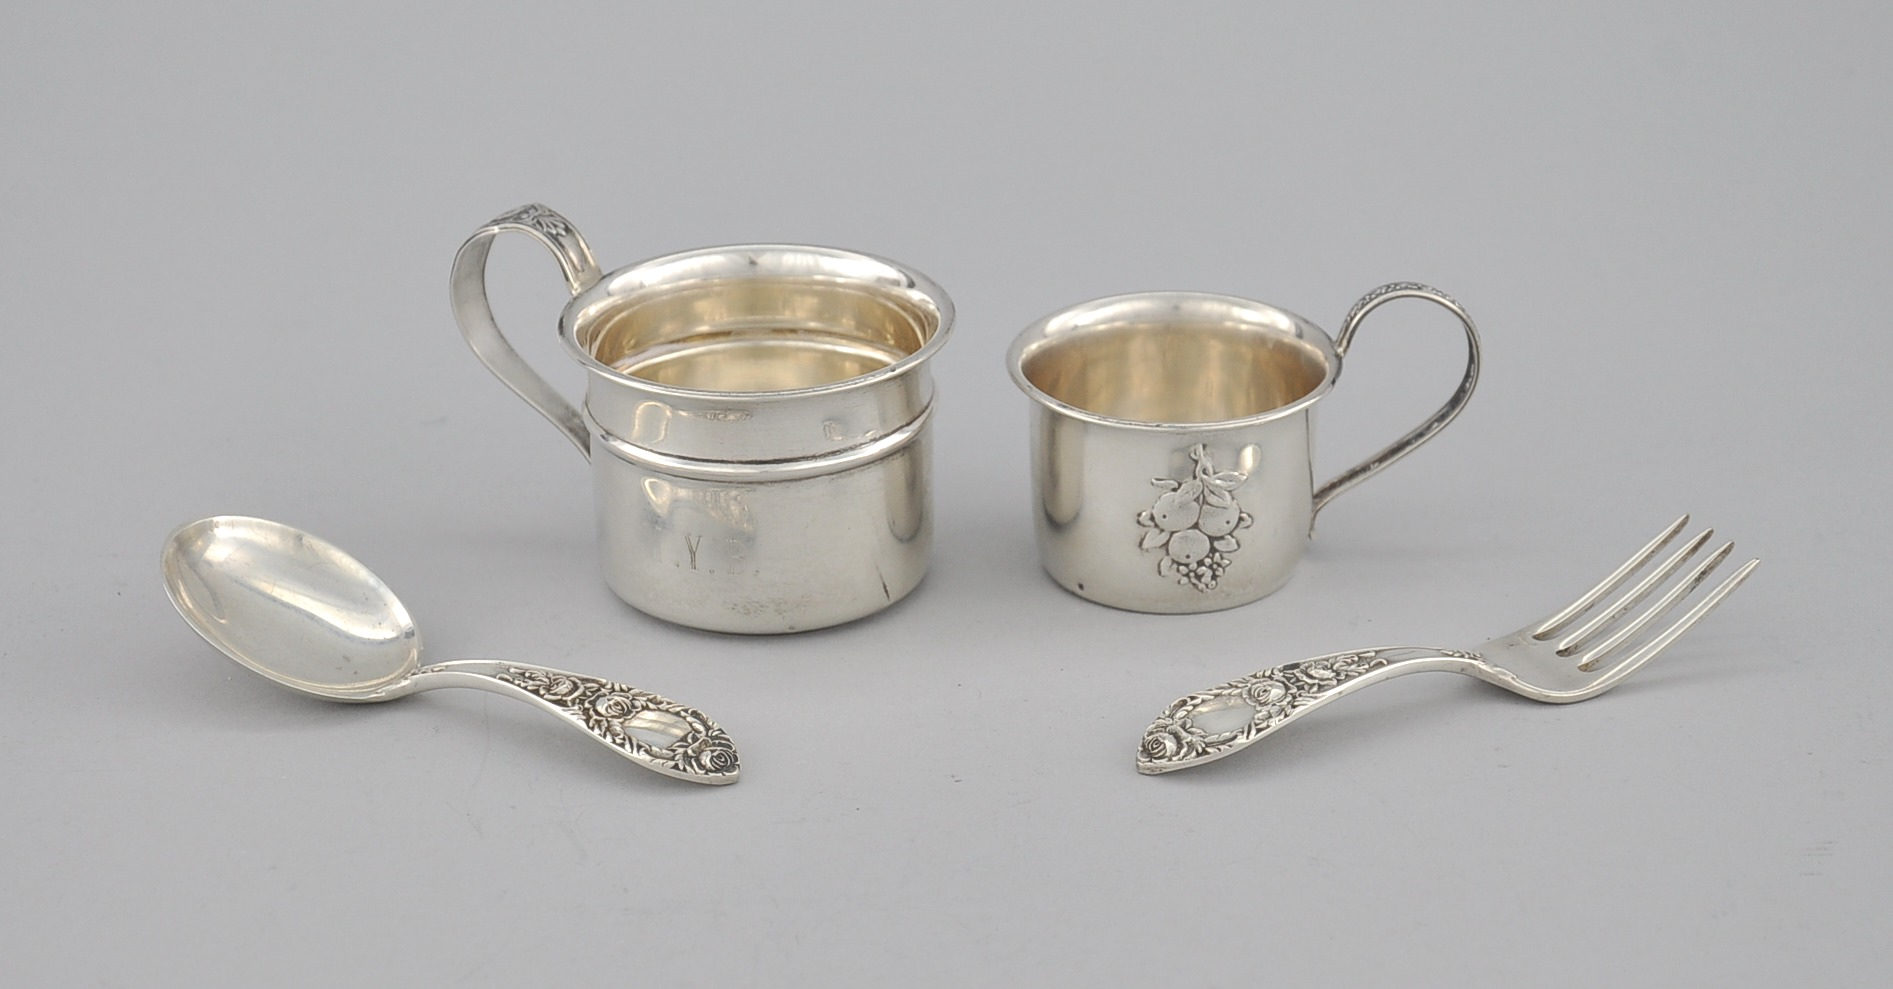 A sterling silver baby spoon and fork by s kirk son and for Sterling silver baby spoon and fork